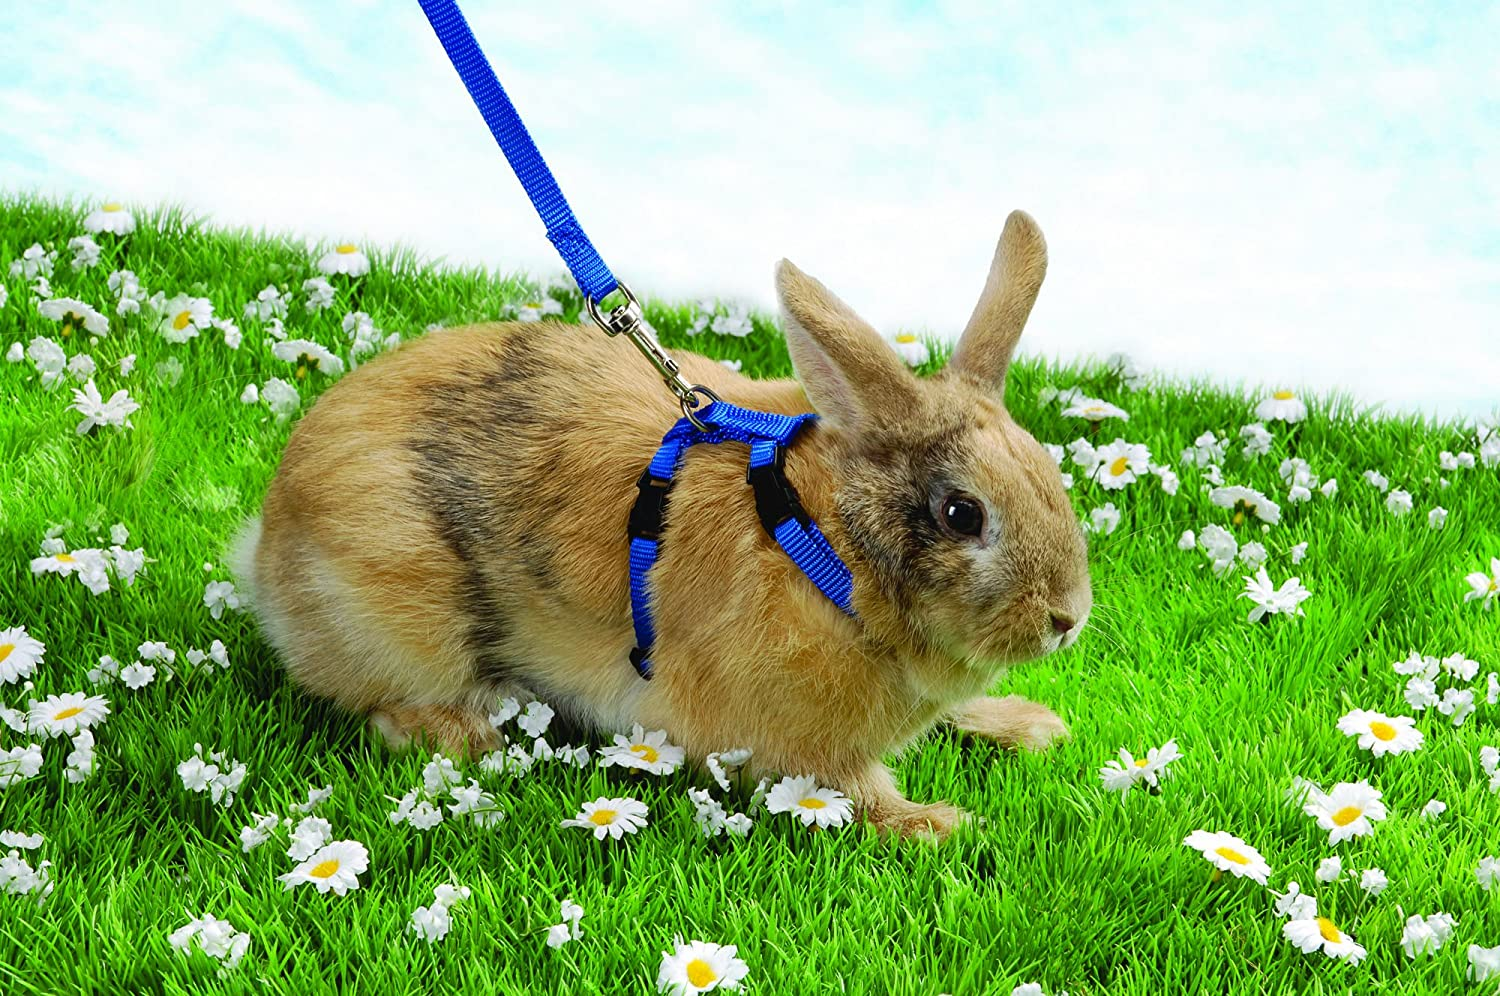 Rabbit Walking Harness Pattern Wire Center Electronics Schematic Diagram 8211 Max2659 Gps Gnss Low Noise Amplifier Amazon Com Trixie Plain Lead Set Pet Rh Rex